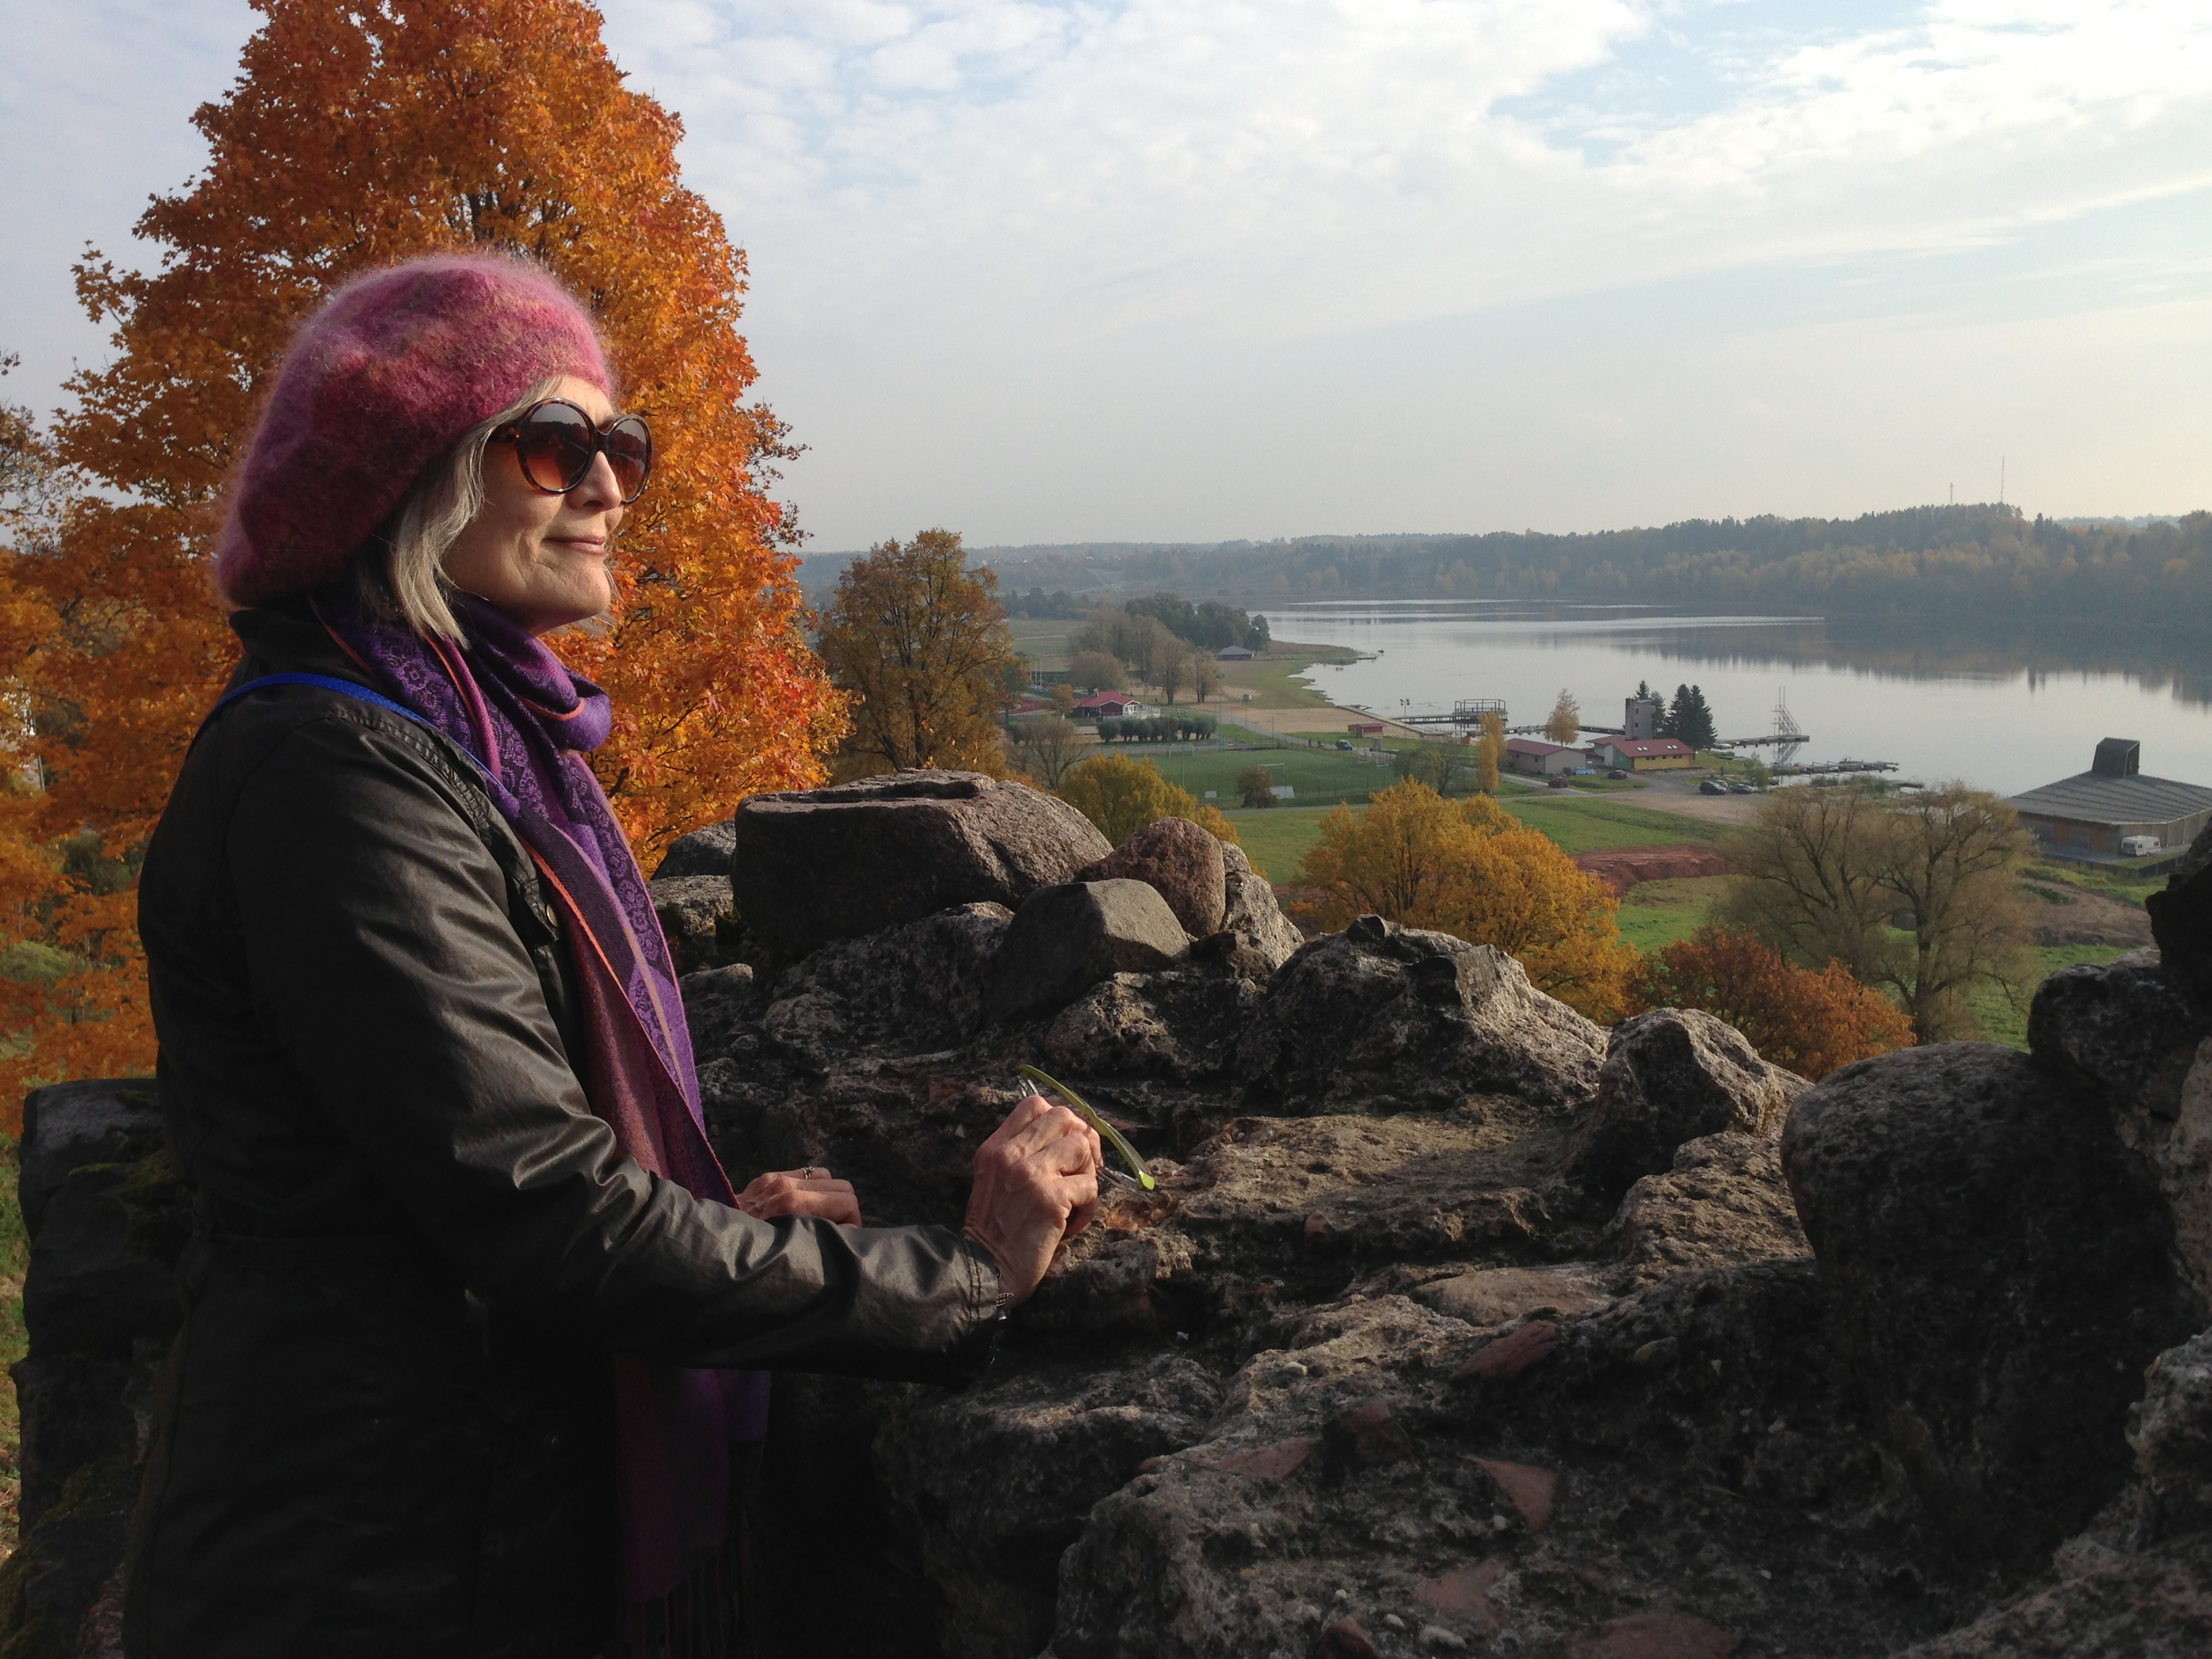 Ancient fortress in Viljandi overlooking river